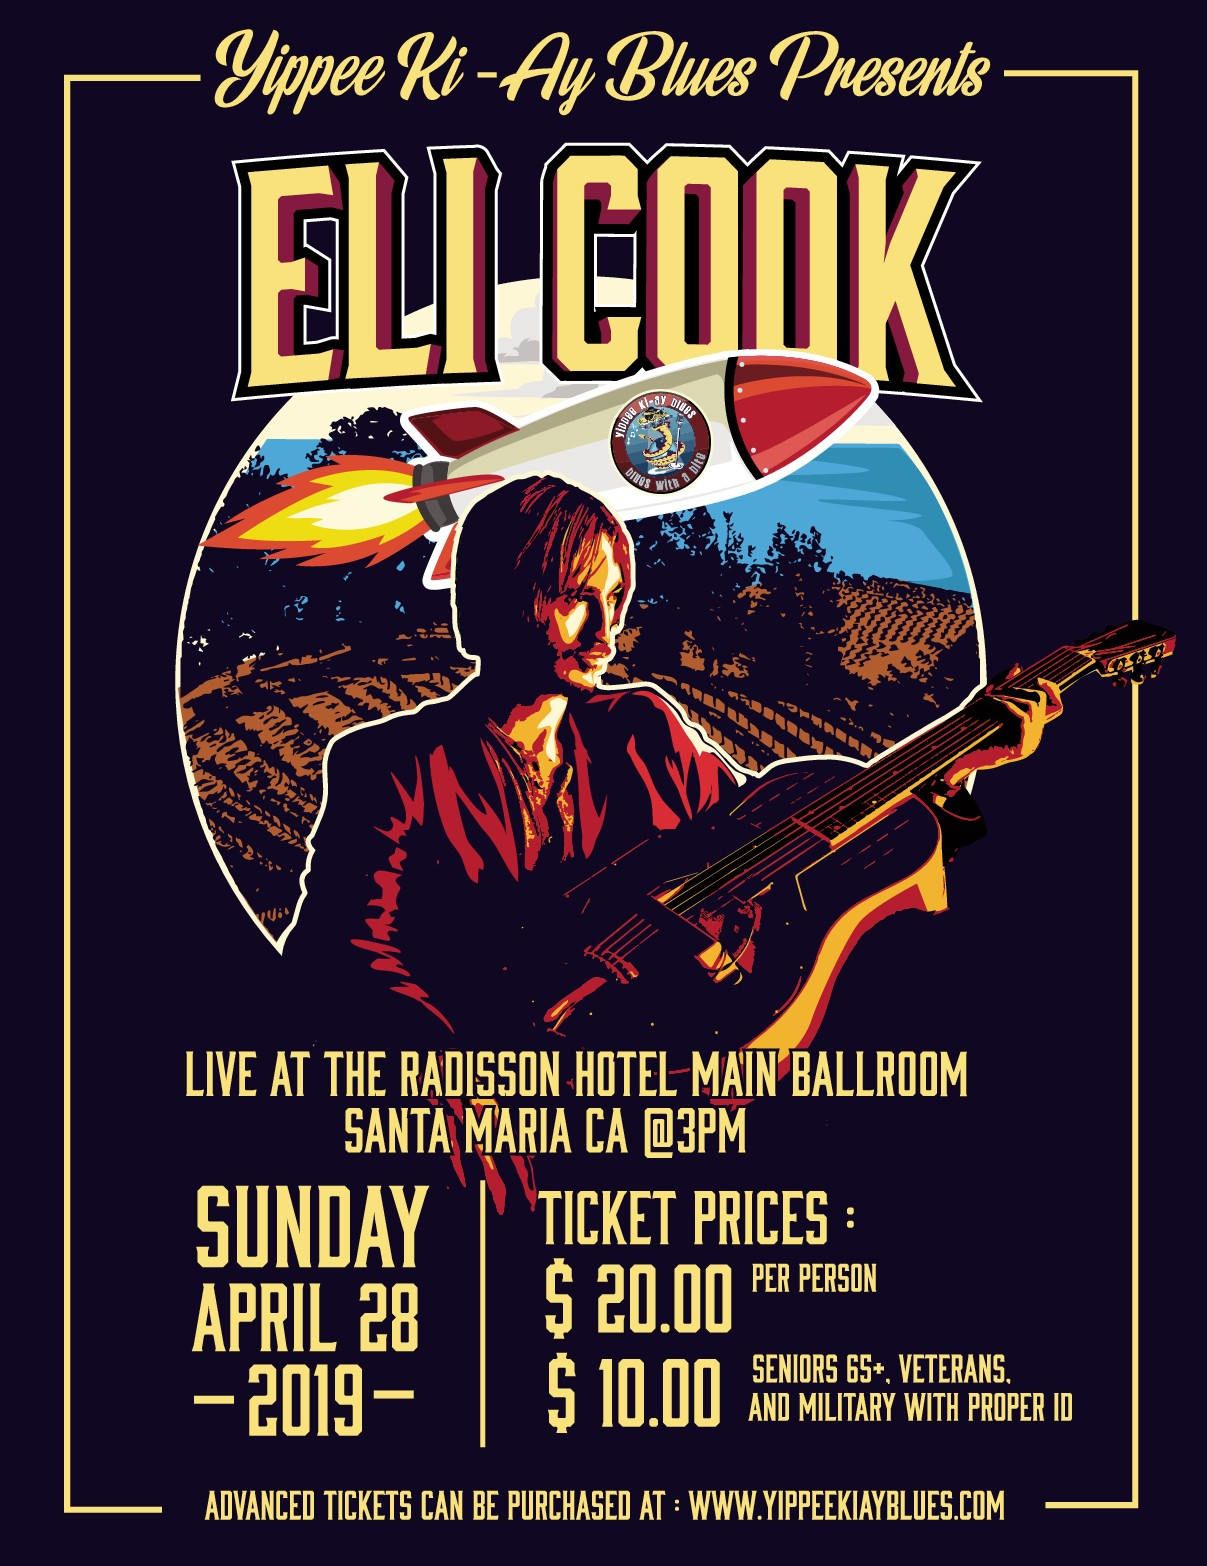 Yippee Ki-Ay Blues Eli Cook Event Poster